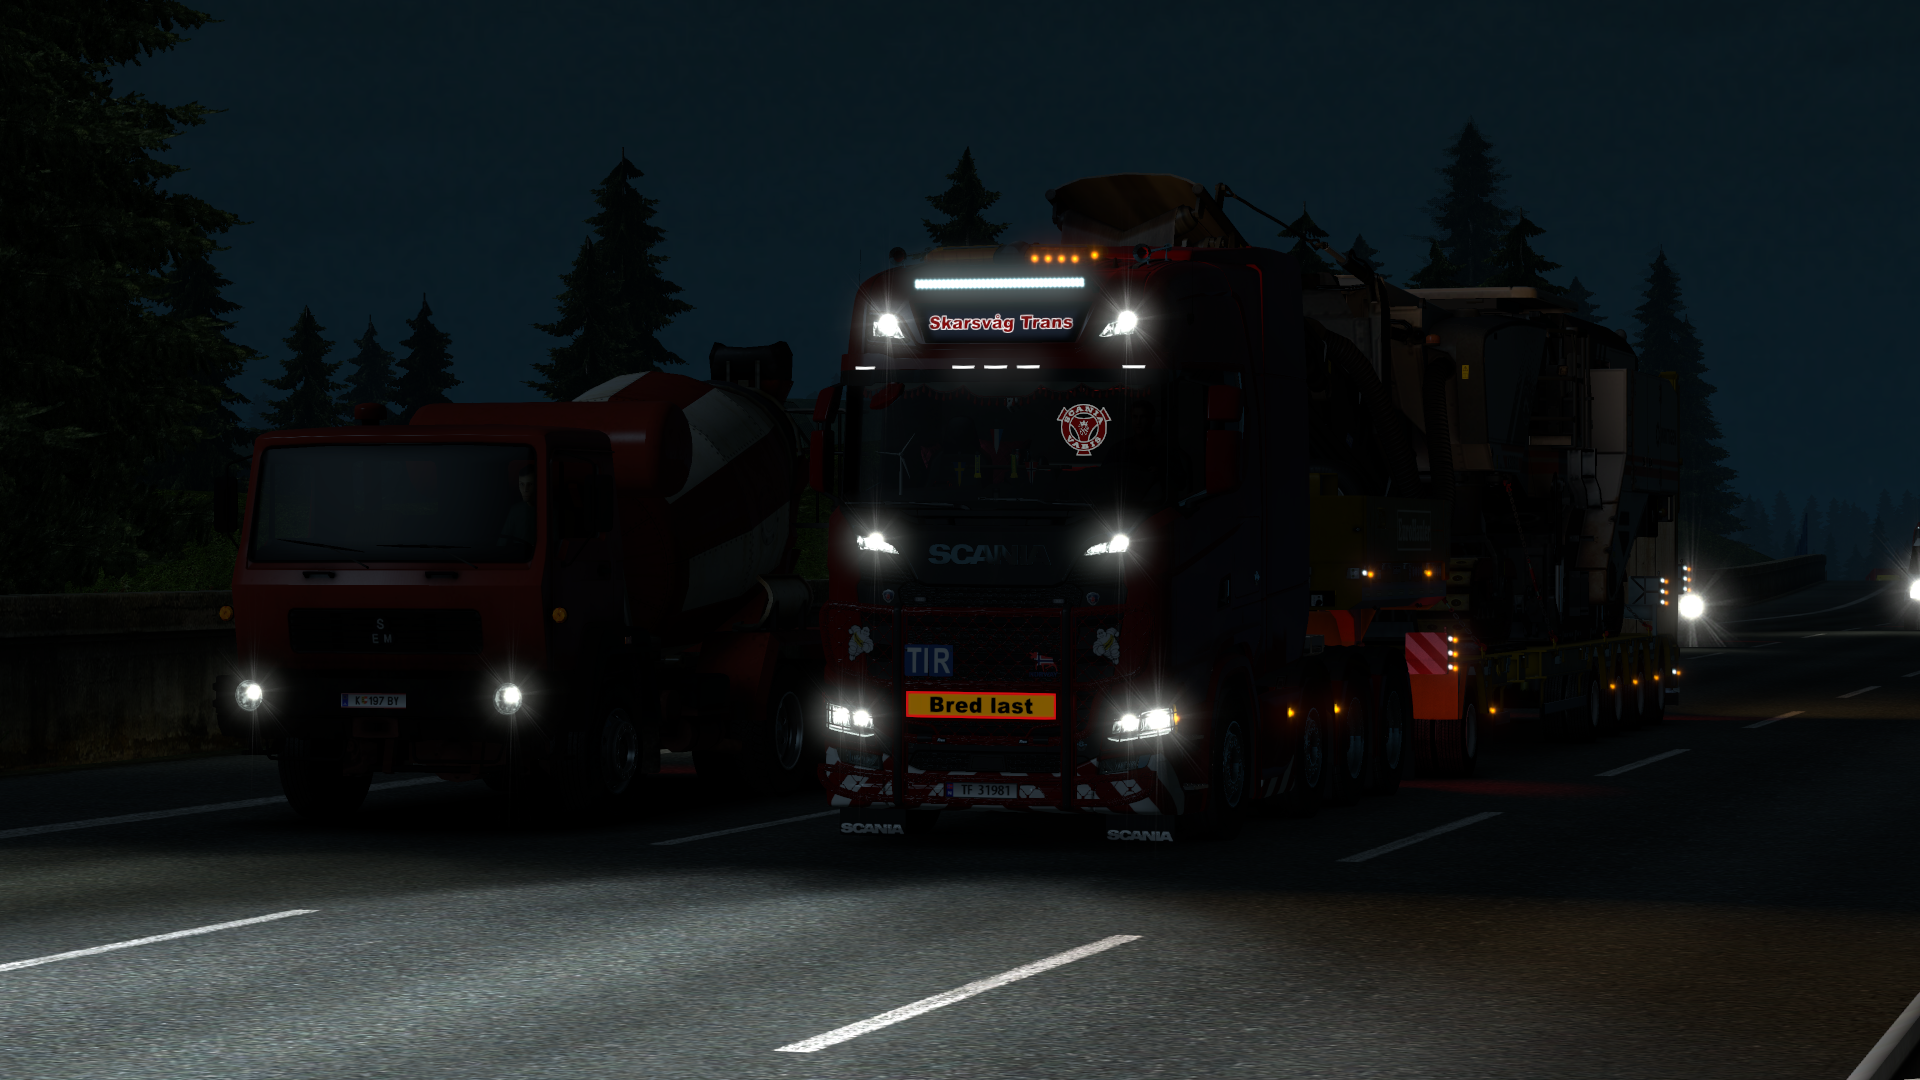 Screenshots - Seite 2 Ets2_20180429_162101_esrms